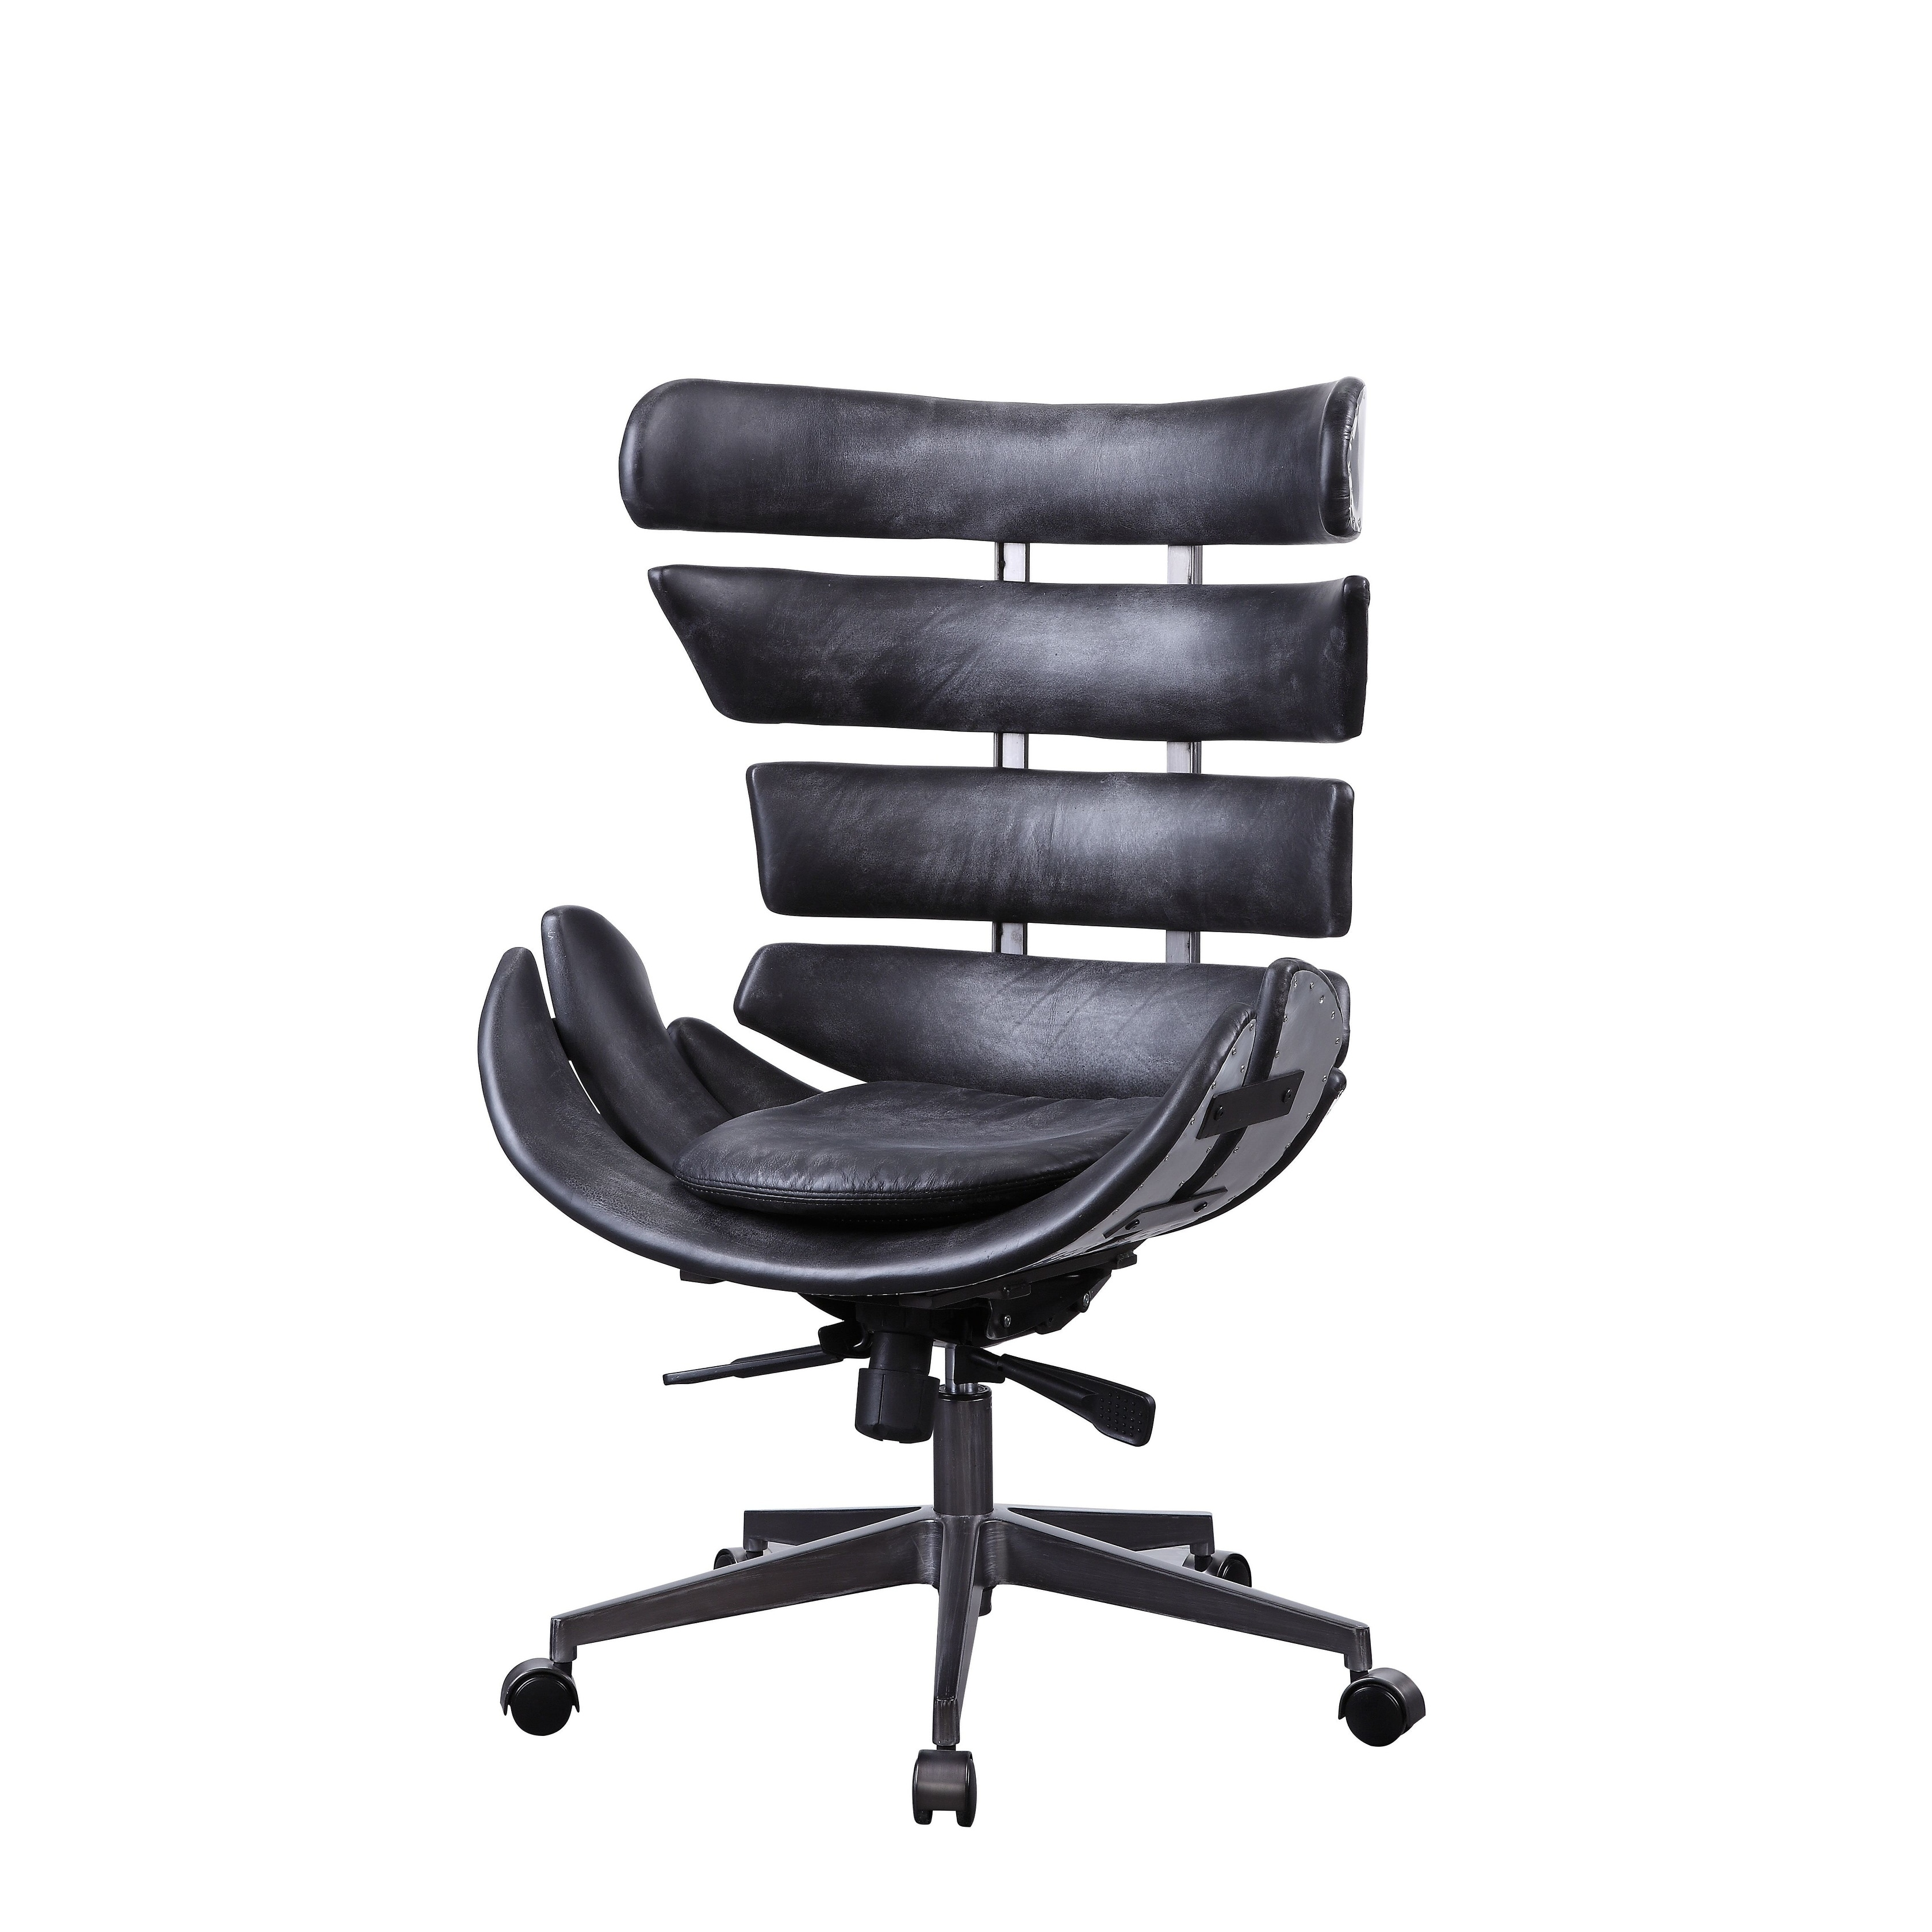 Megan Executive Office Chair In Vintage Black Top Grain Leather And Aluminum Overstock 27798492